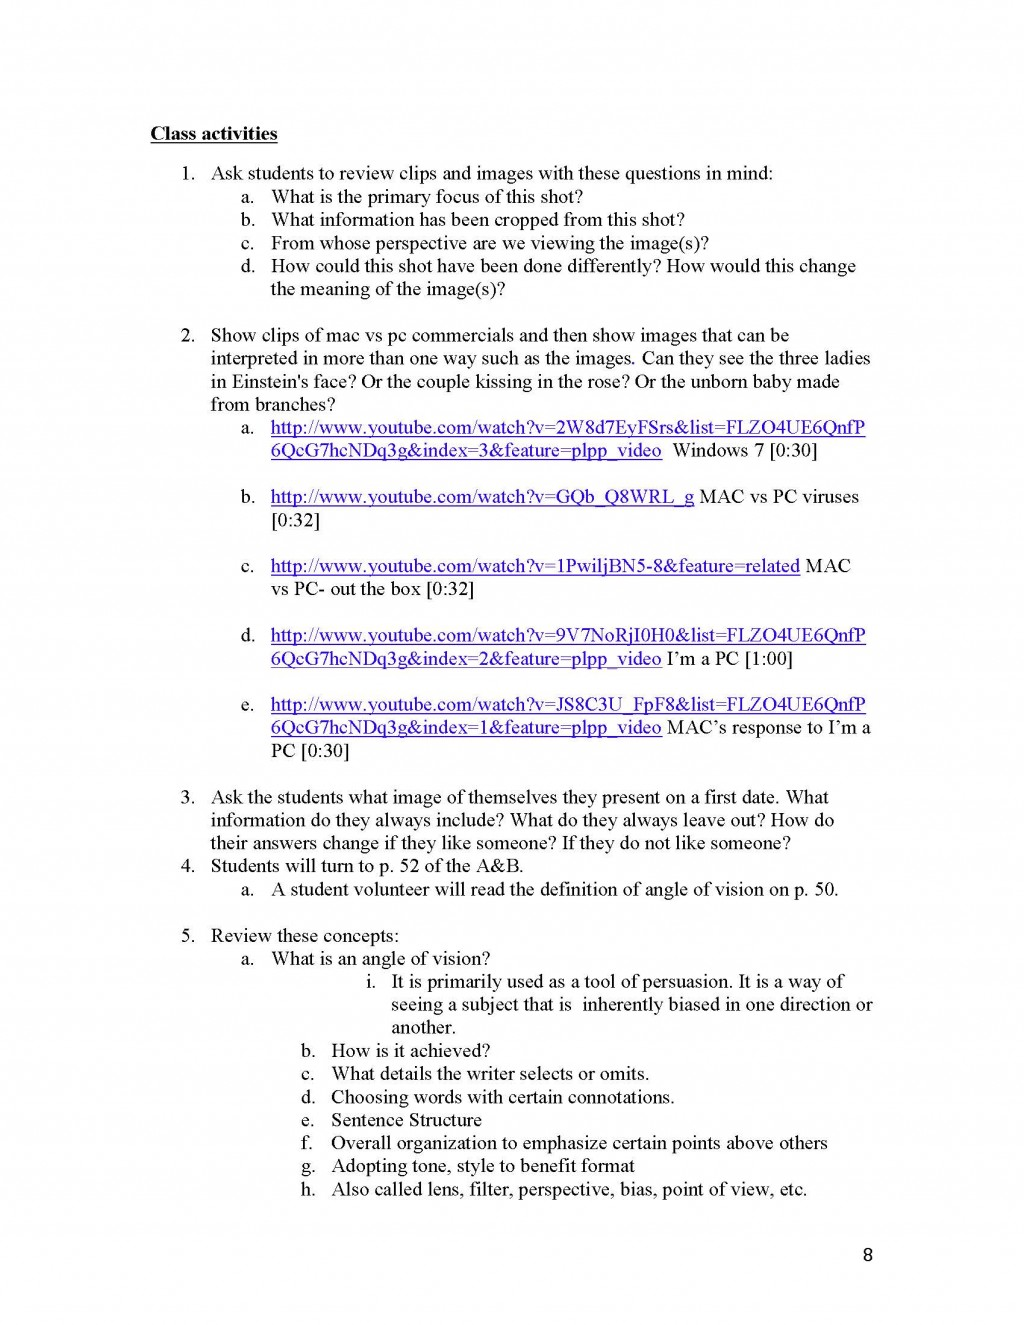 006 Essay Example Define Narrative Unit 1 Literacy Instructor Copy Page 08 Fascinating Narrative/descriptive Definition Of Writing The Term Large